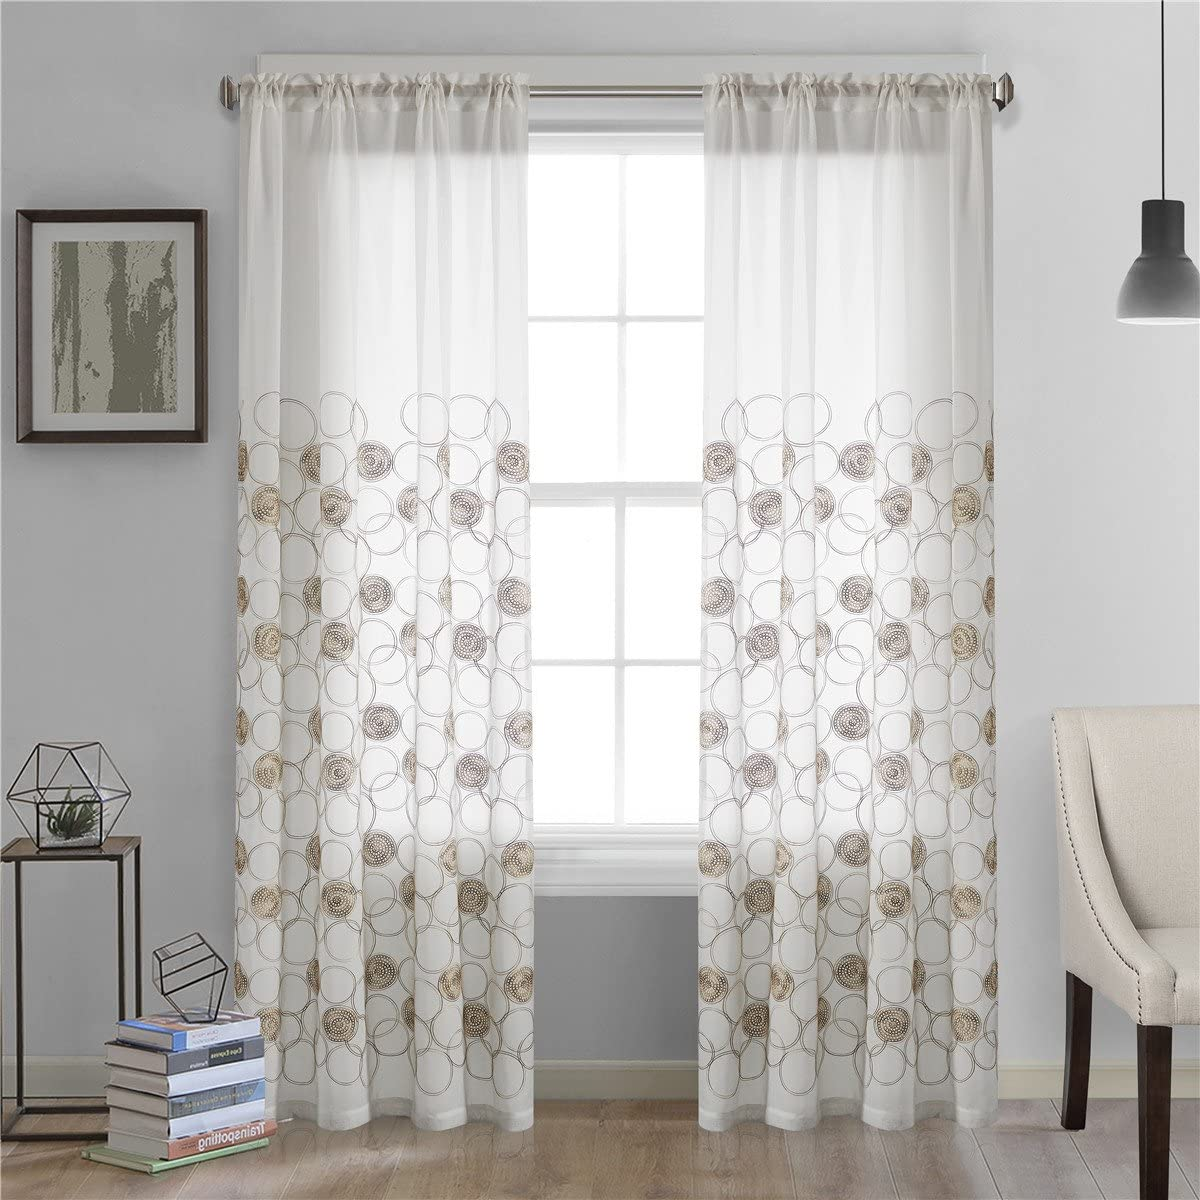 Dreaming Casa Roundness Pattern White Window Sheer Curtains for Living Room Rod Pocket Curtain Drapes for Bedroom 100 W x 102 L Set of 2 Panels